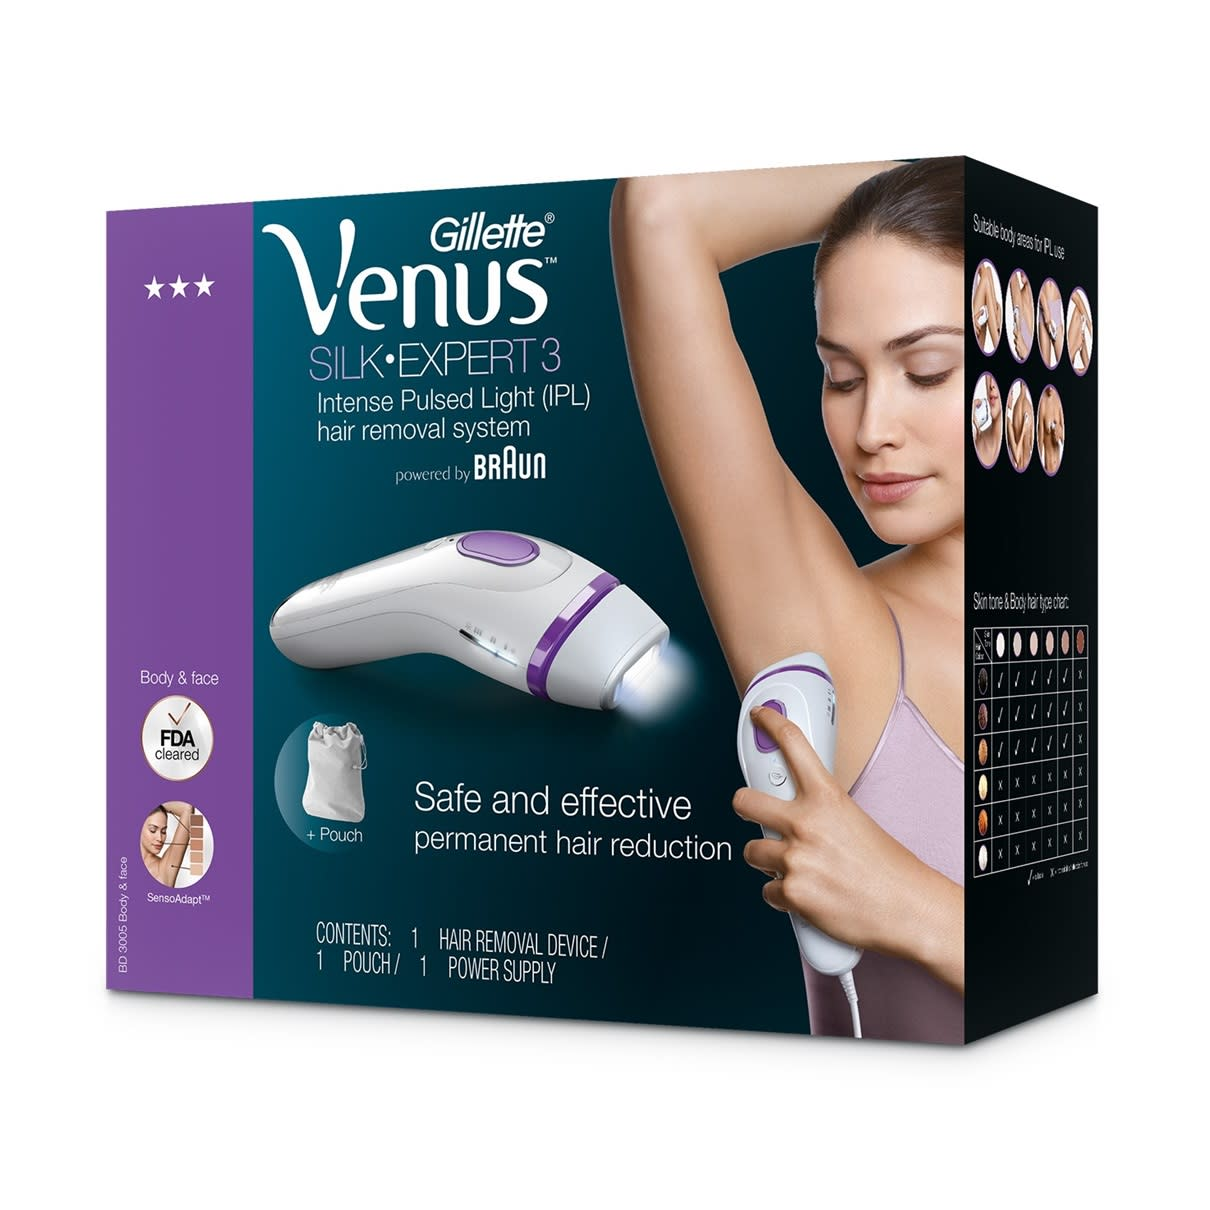 Venus Silk-expert 3 BD3005 IPL with pouch.